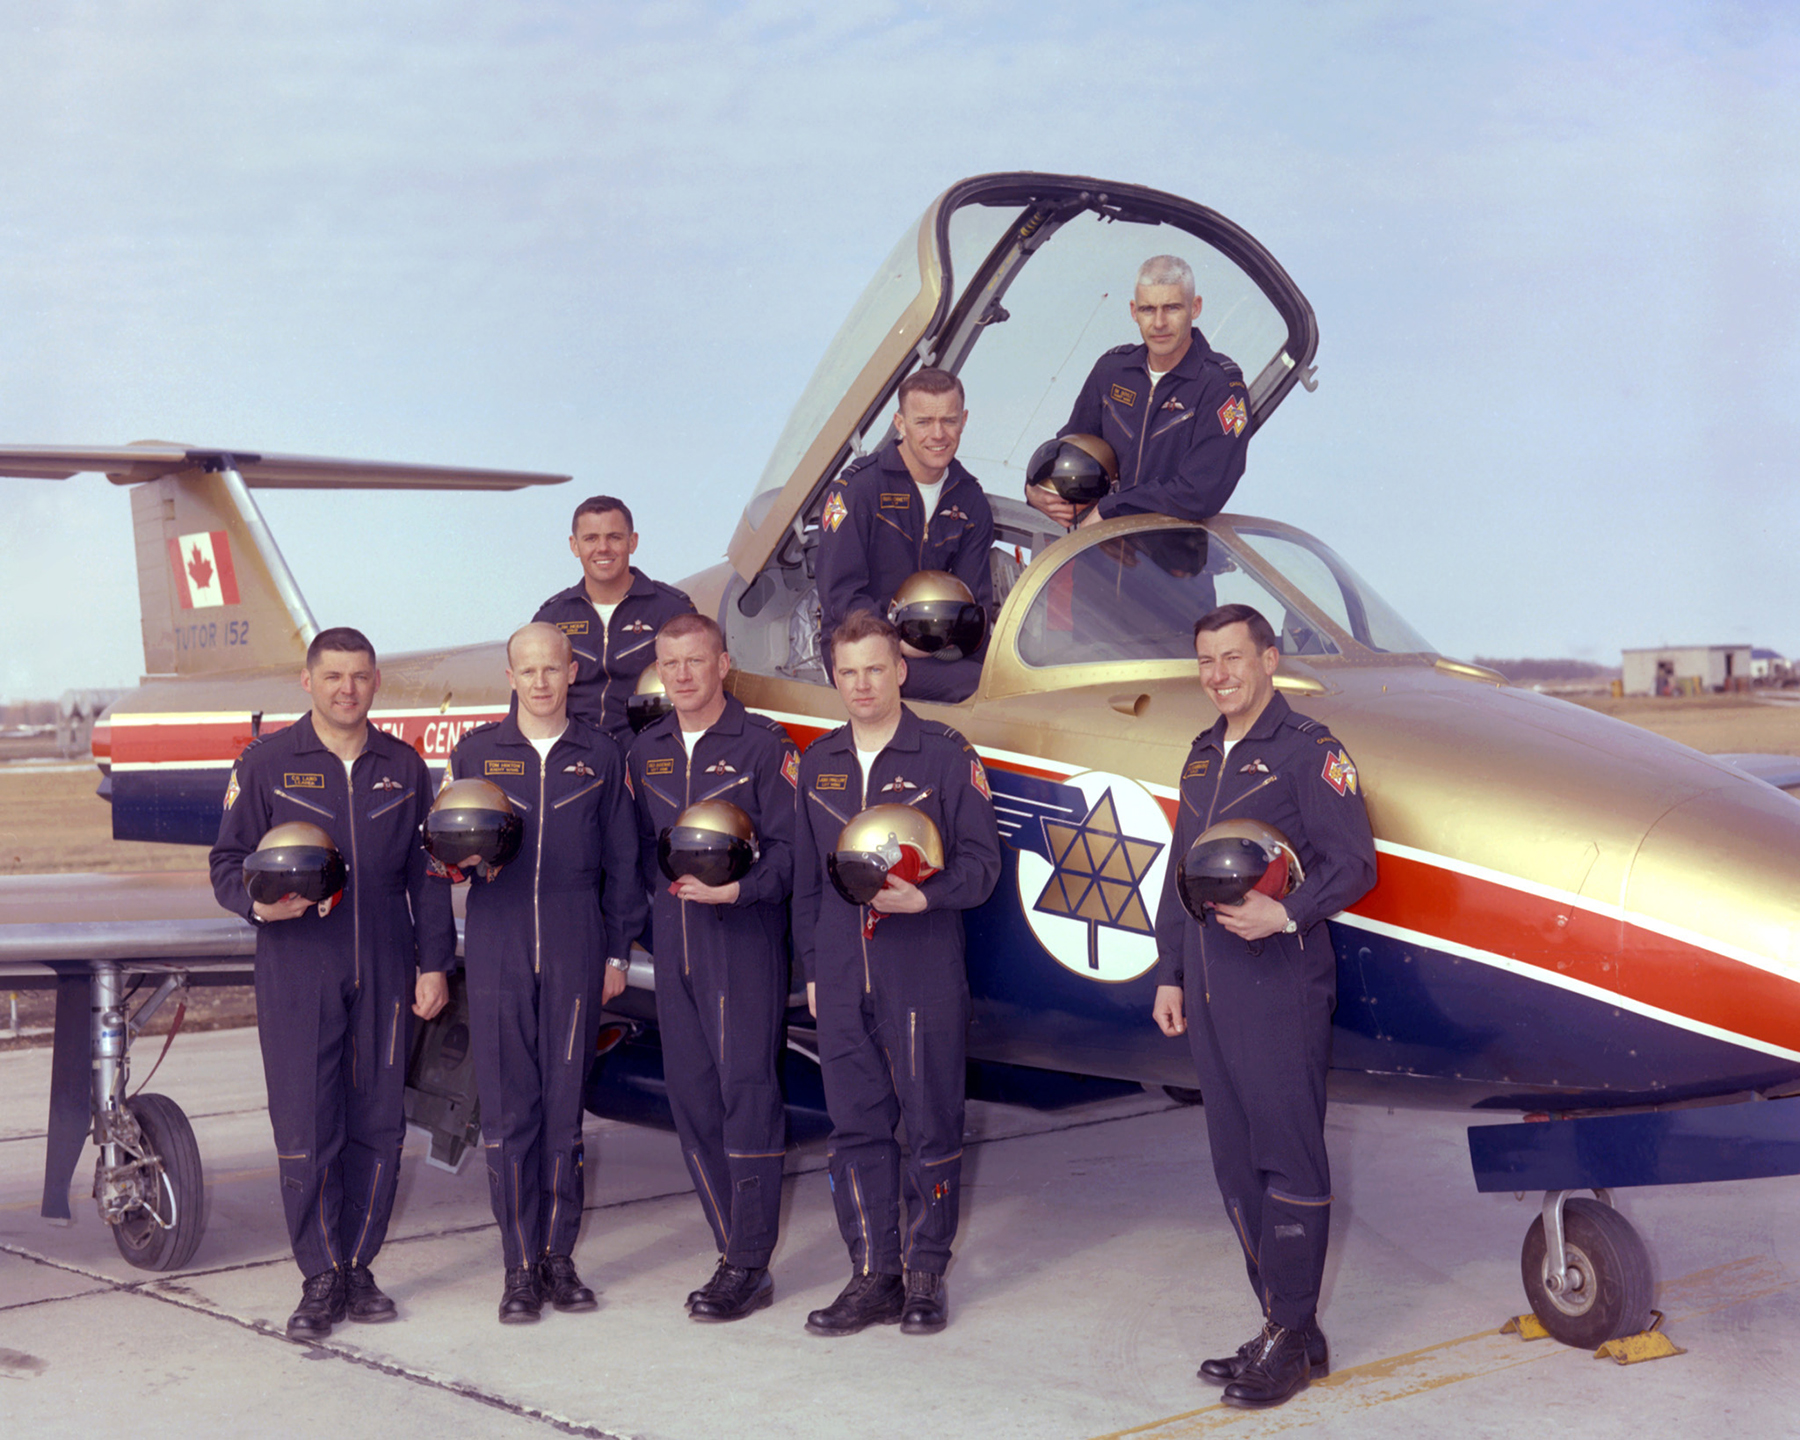 L'équipe des pilotes de Tutor des Paladins du Centenaire à Portage la Prairie, au Manitoba, le 6 avril 1967. À l'avant, à partir de la gauche, se trouvent le commandant d'aviation Clarence Lang, le capitaine d'aviation Tom Hinton, le capitaine d'aviation Red Dagenais, le capitaine d'aviation John Swallow et le capitaine d'aviation Bill Slaughter. À l'arrière, à partir de la gauche, on voit le lieutenant d'aviation Jim McKay, le capitaine d'aviation Russ Bennett et le capitaine d'aviation B.K. Doyle. Les capitaines d'aviation Bennett et Doyle ont reçu le grade de commandant d'aviation avant le début de la saison de spectacles. PHOTO : Archives du MDN, WG67-104-3